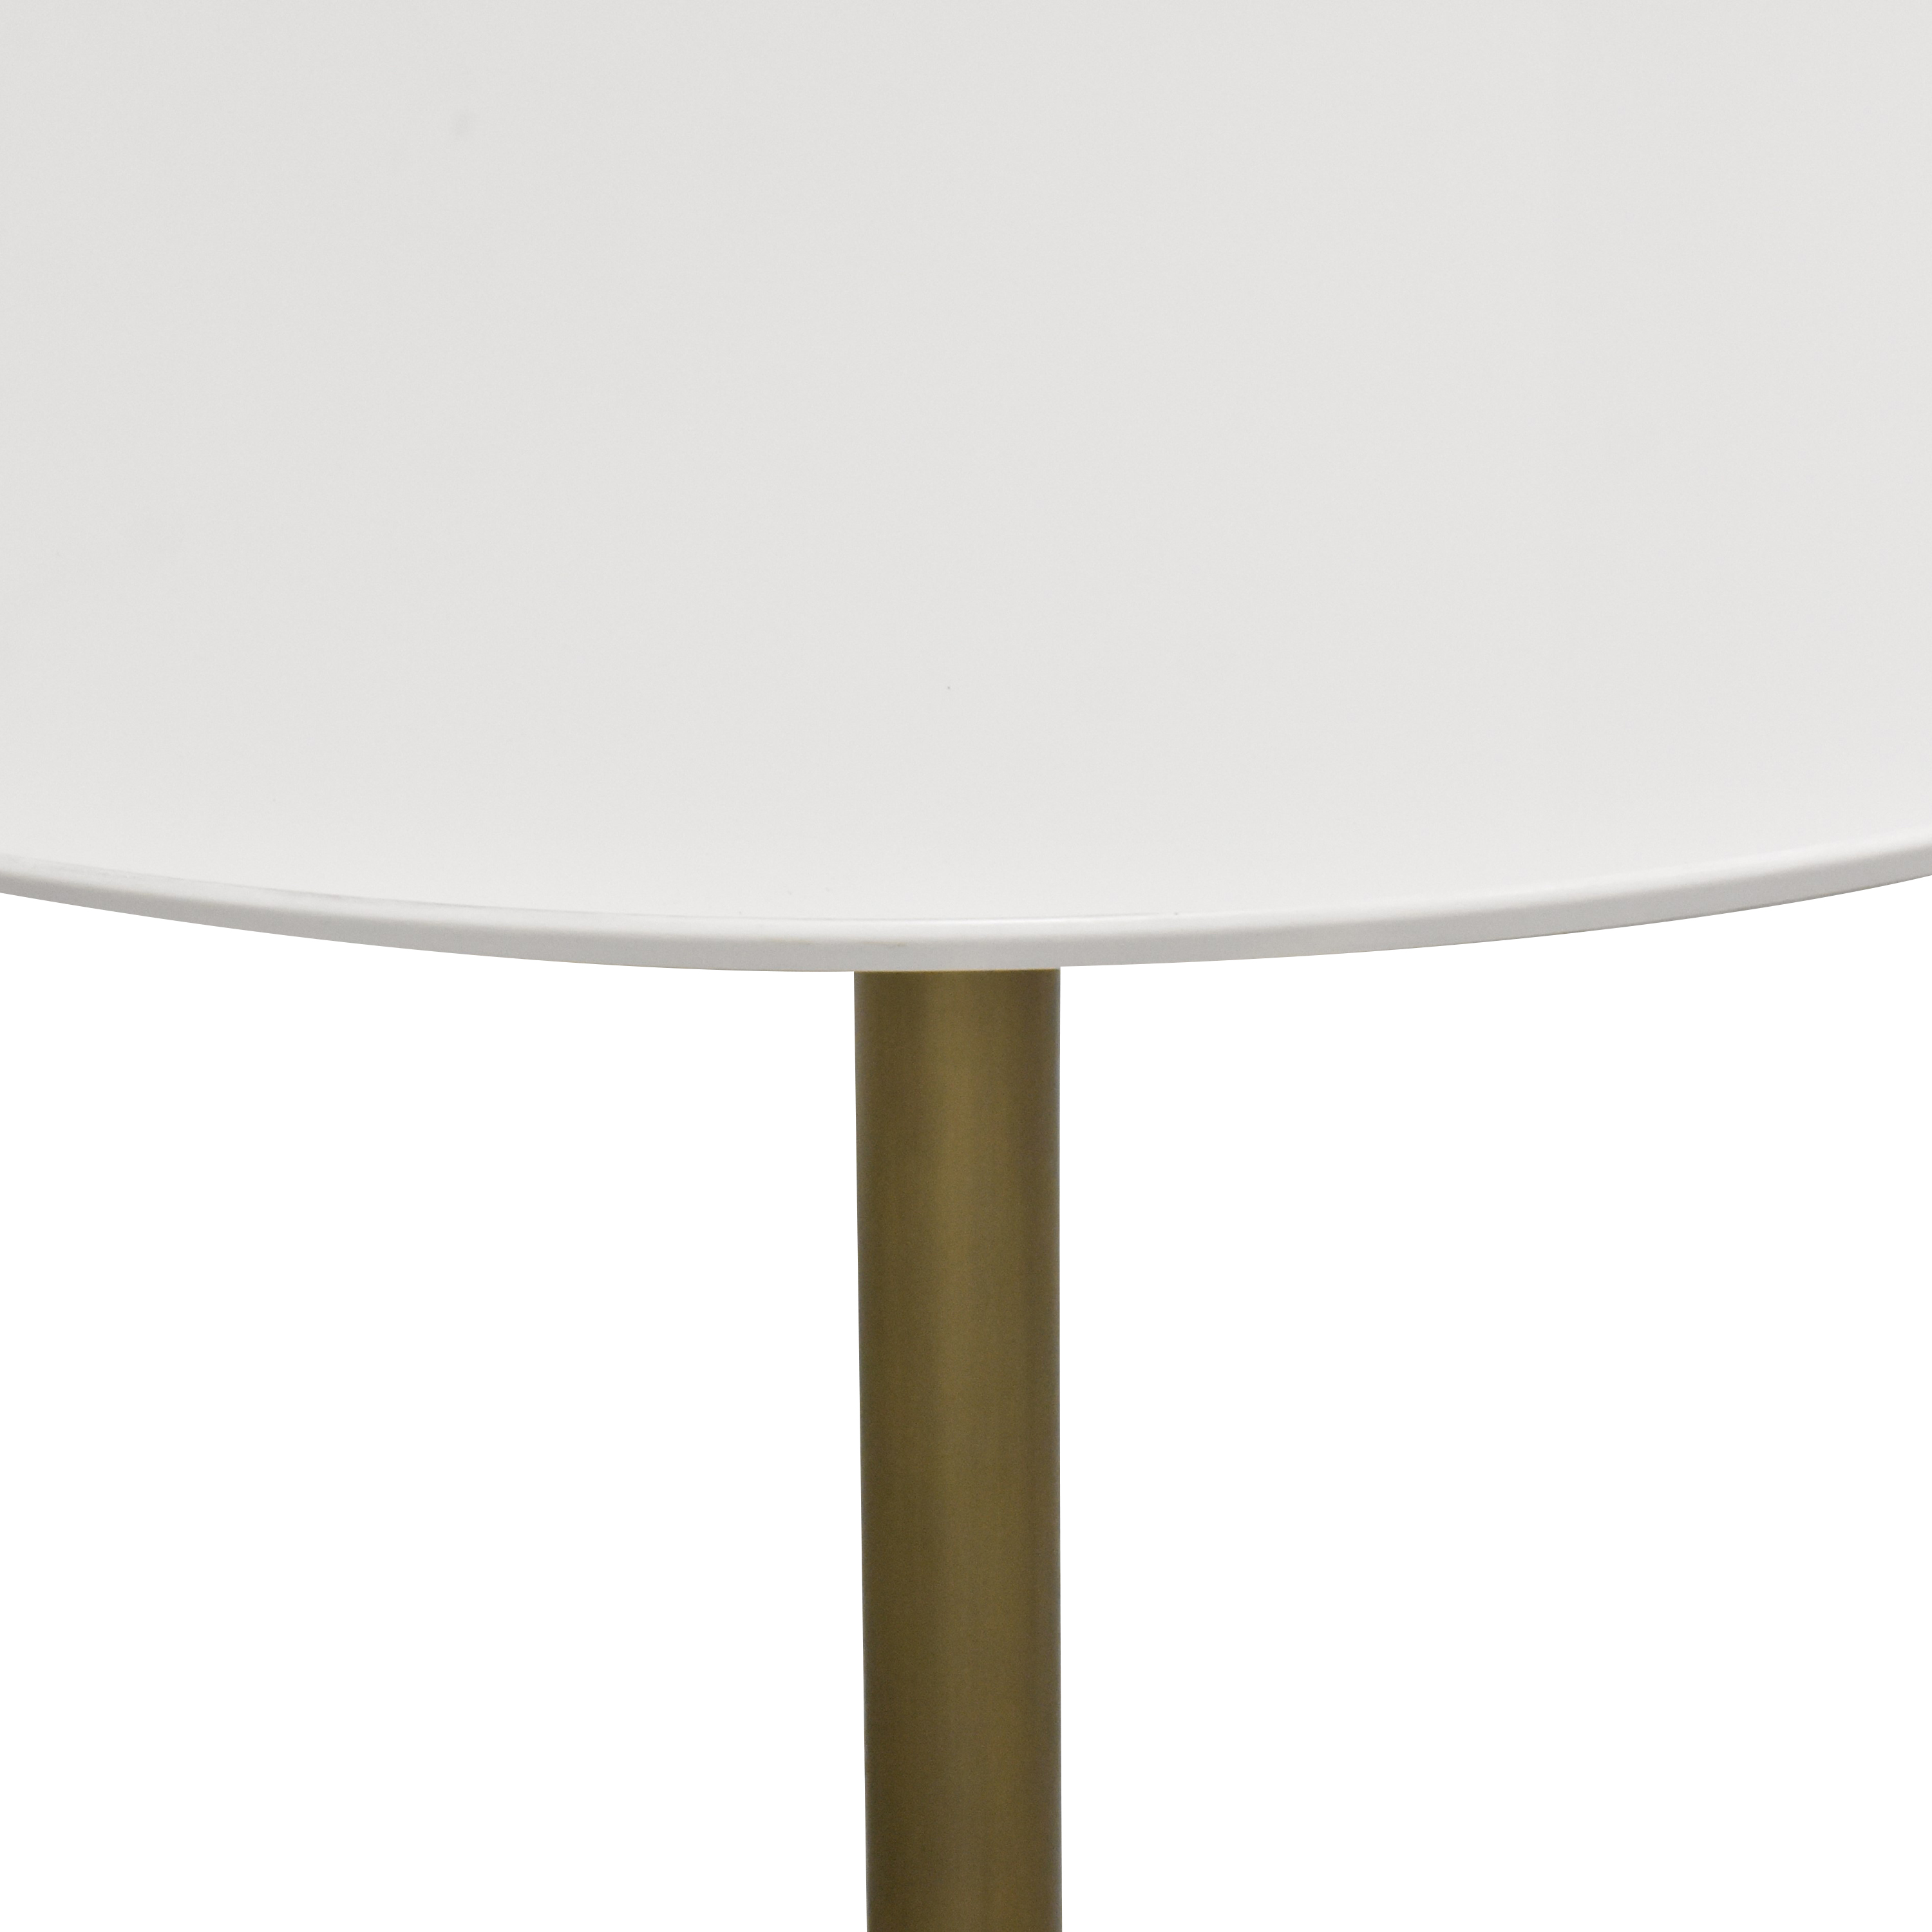 CB2 Odyssey Dining Table / Dinner Tables